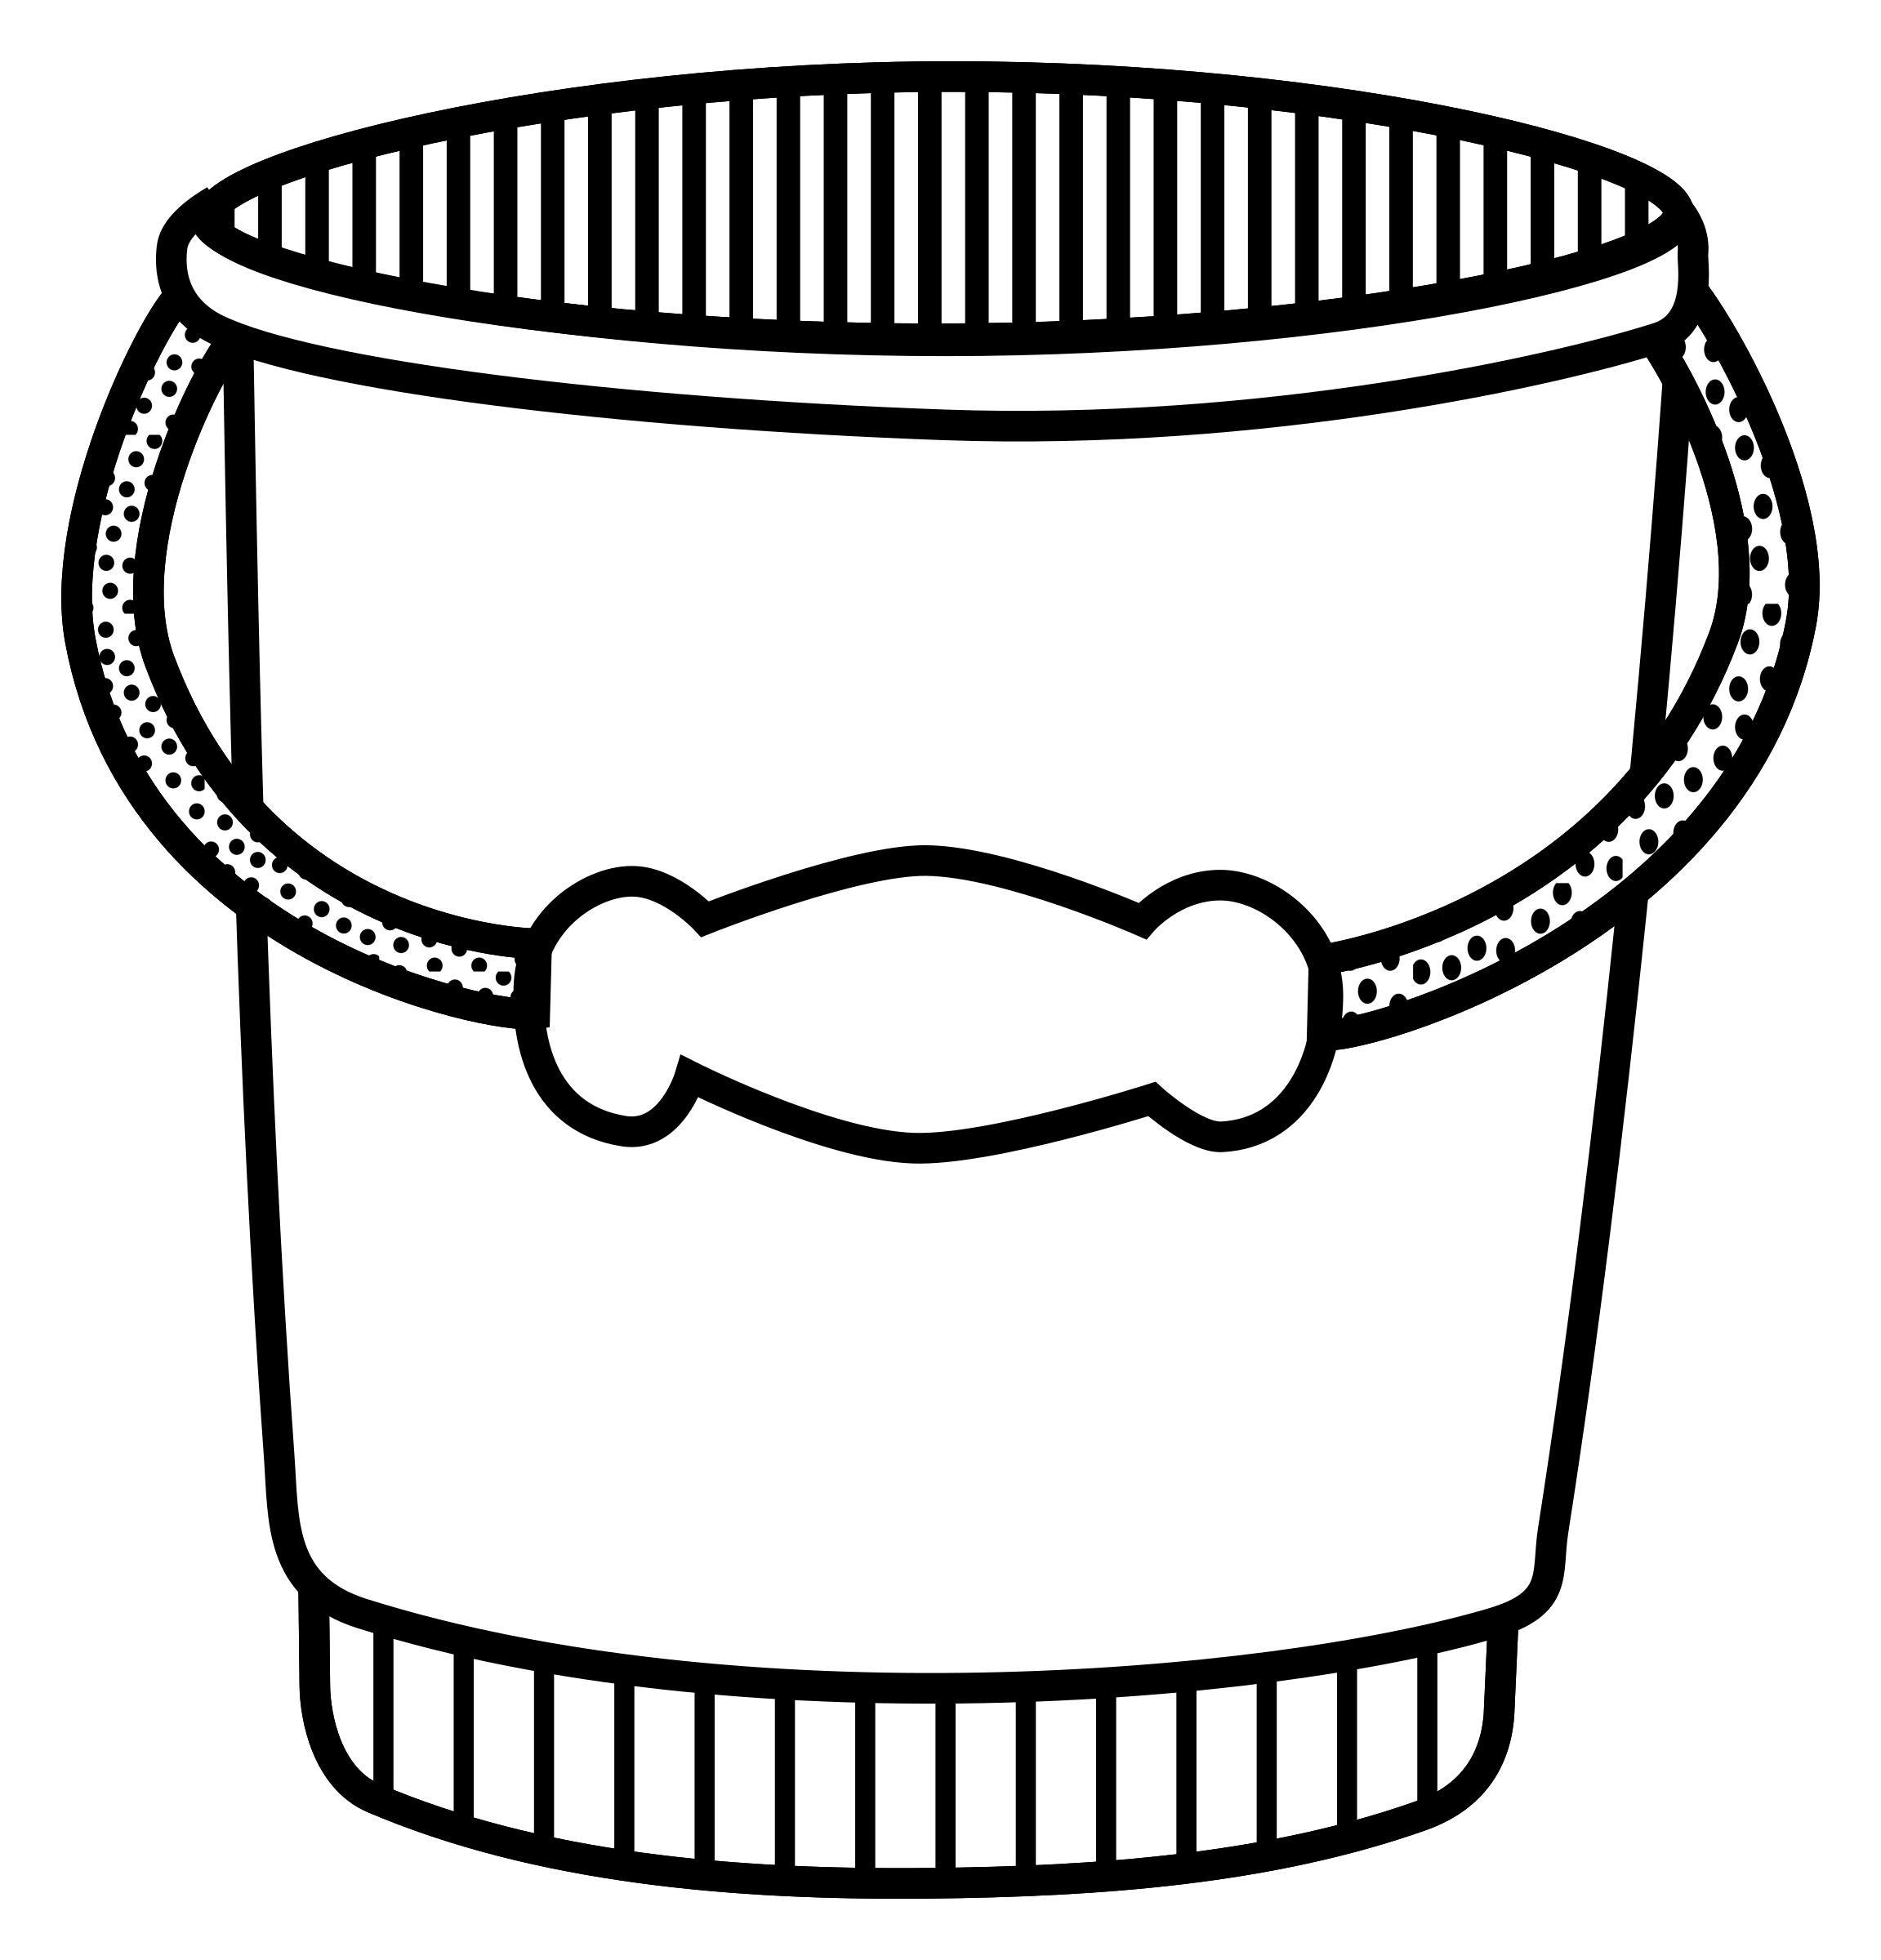 Water bucket clipart black and white graphic freeuse download Black and white clipart of water bucket - Clip Art Library graphic freeuse download